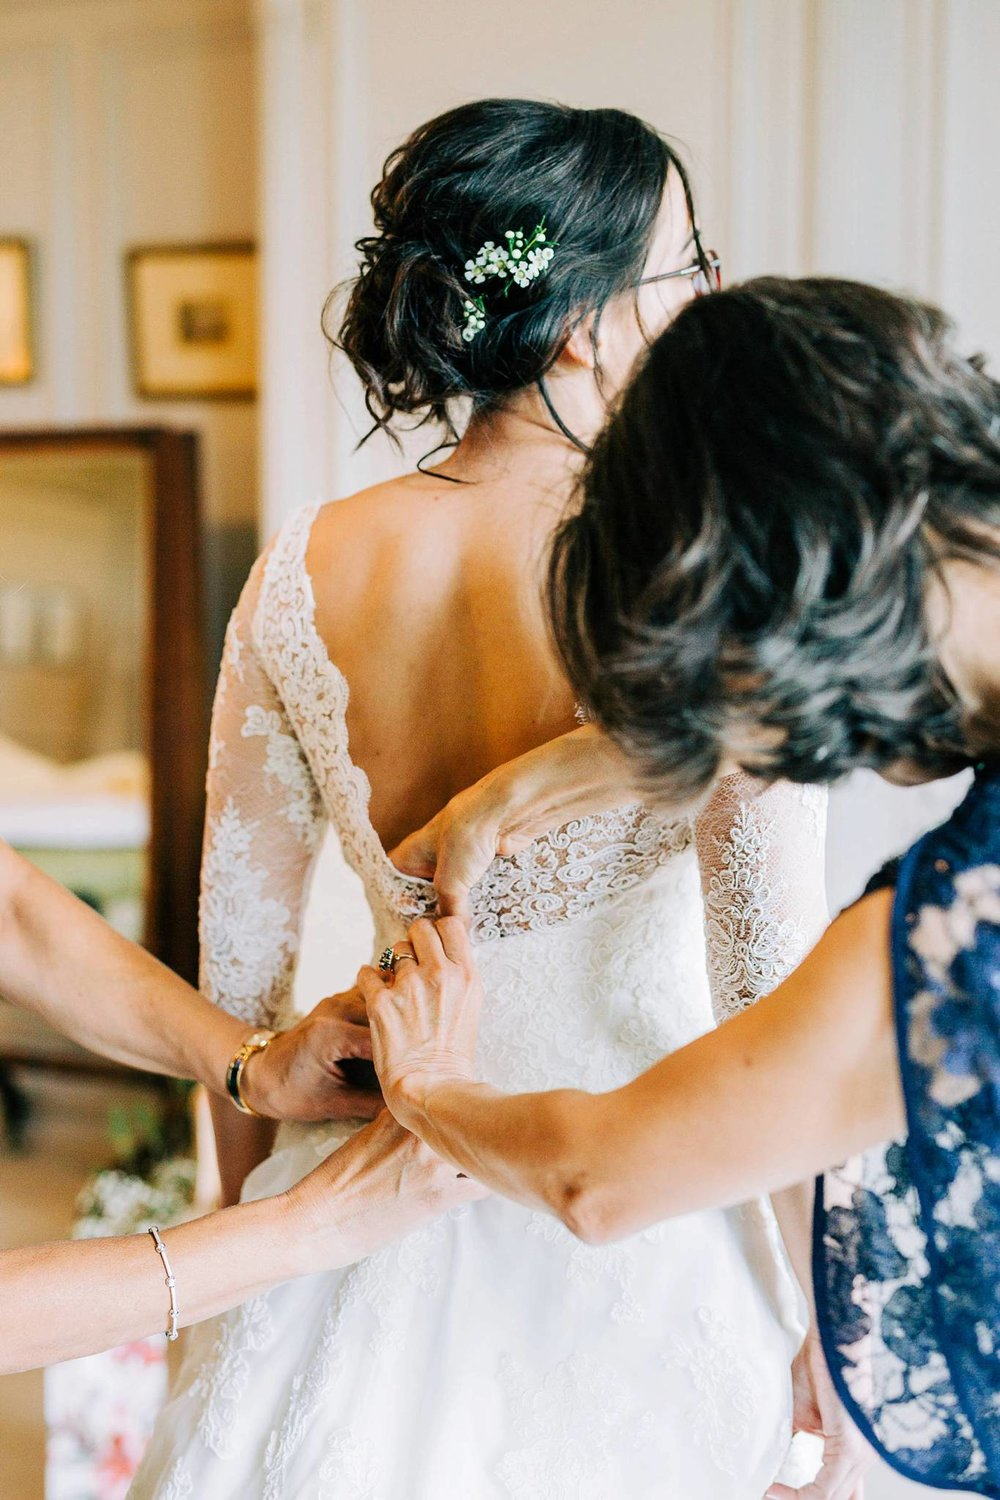 Natural wedding photography Manchester - Clare Robinson Photography_0031.jpg